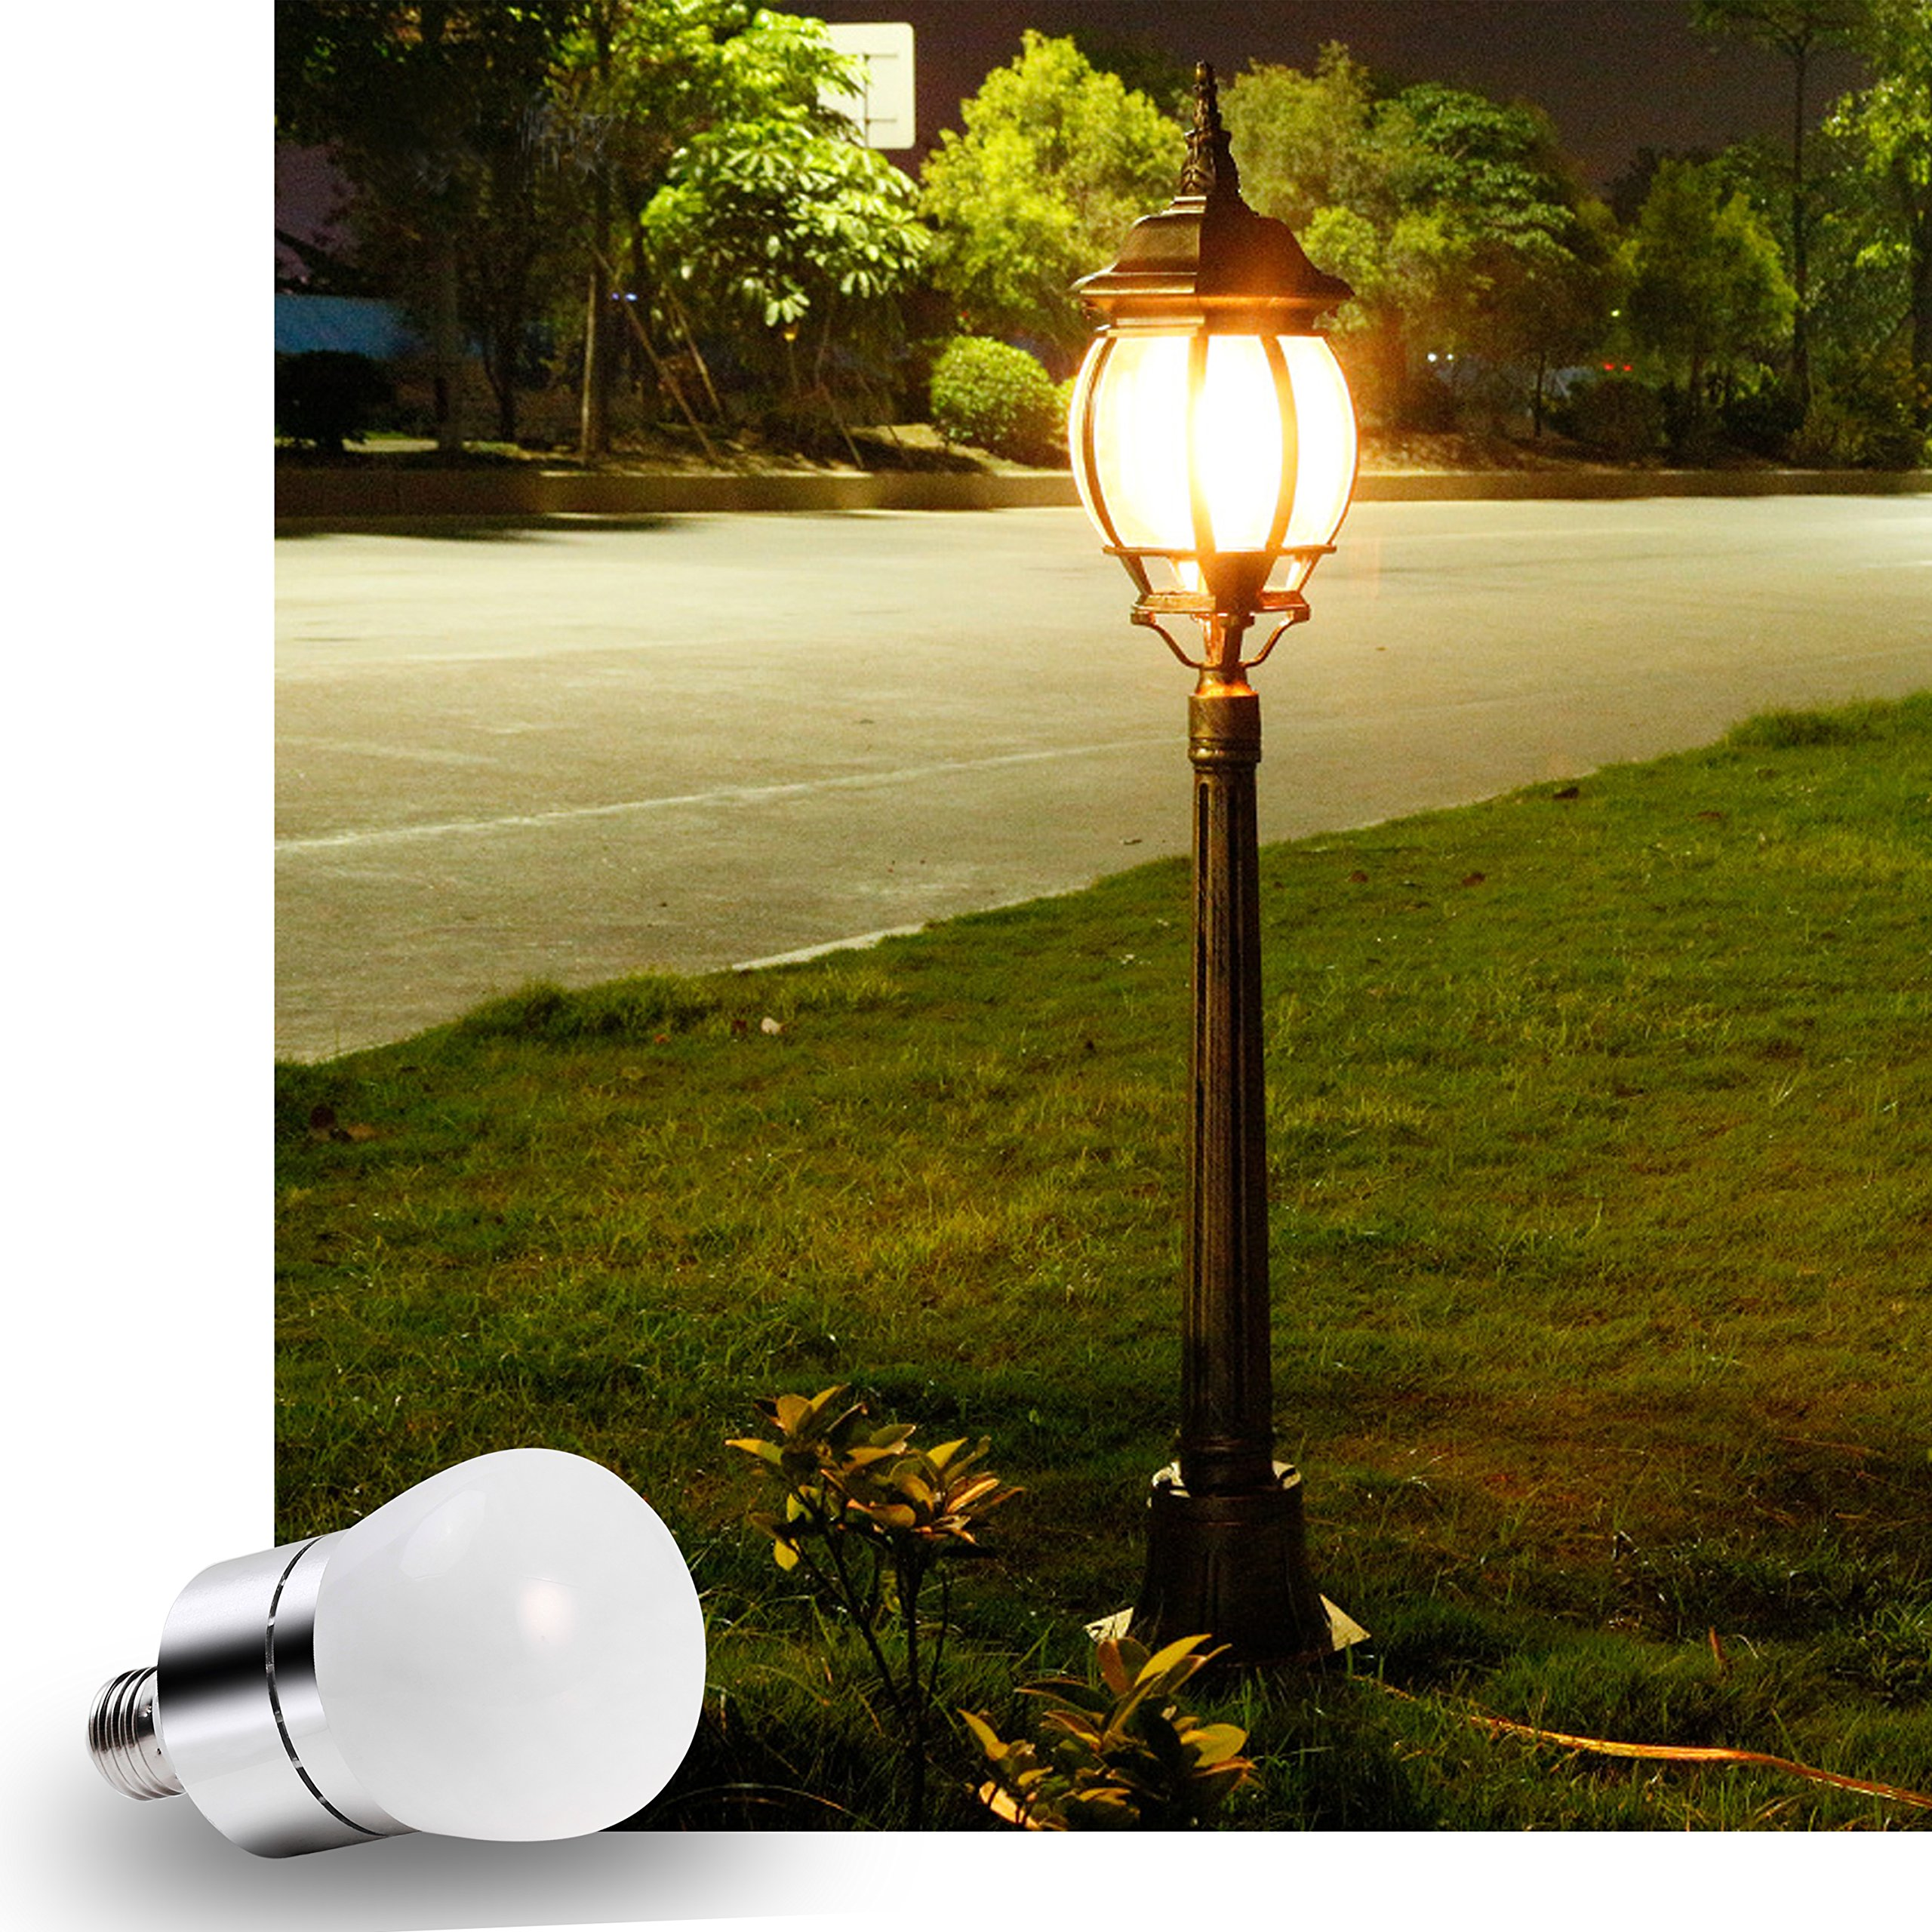 LED Light Bulbs Dusk to Dawn Sensor Lights Bulb Smart Lighting Lamp 12W 1200LM E26/E27 Socket 3200k Auto On/Off Indoor Outdoor Security Light for Porch, Garage, Driveway, Yard, Patio (Warm White) by Vgogfly (Image #6)